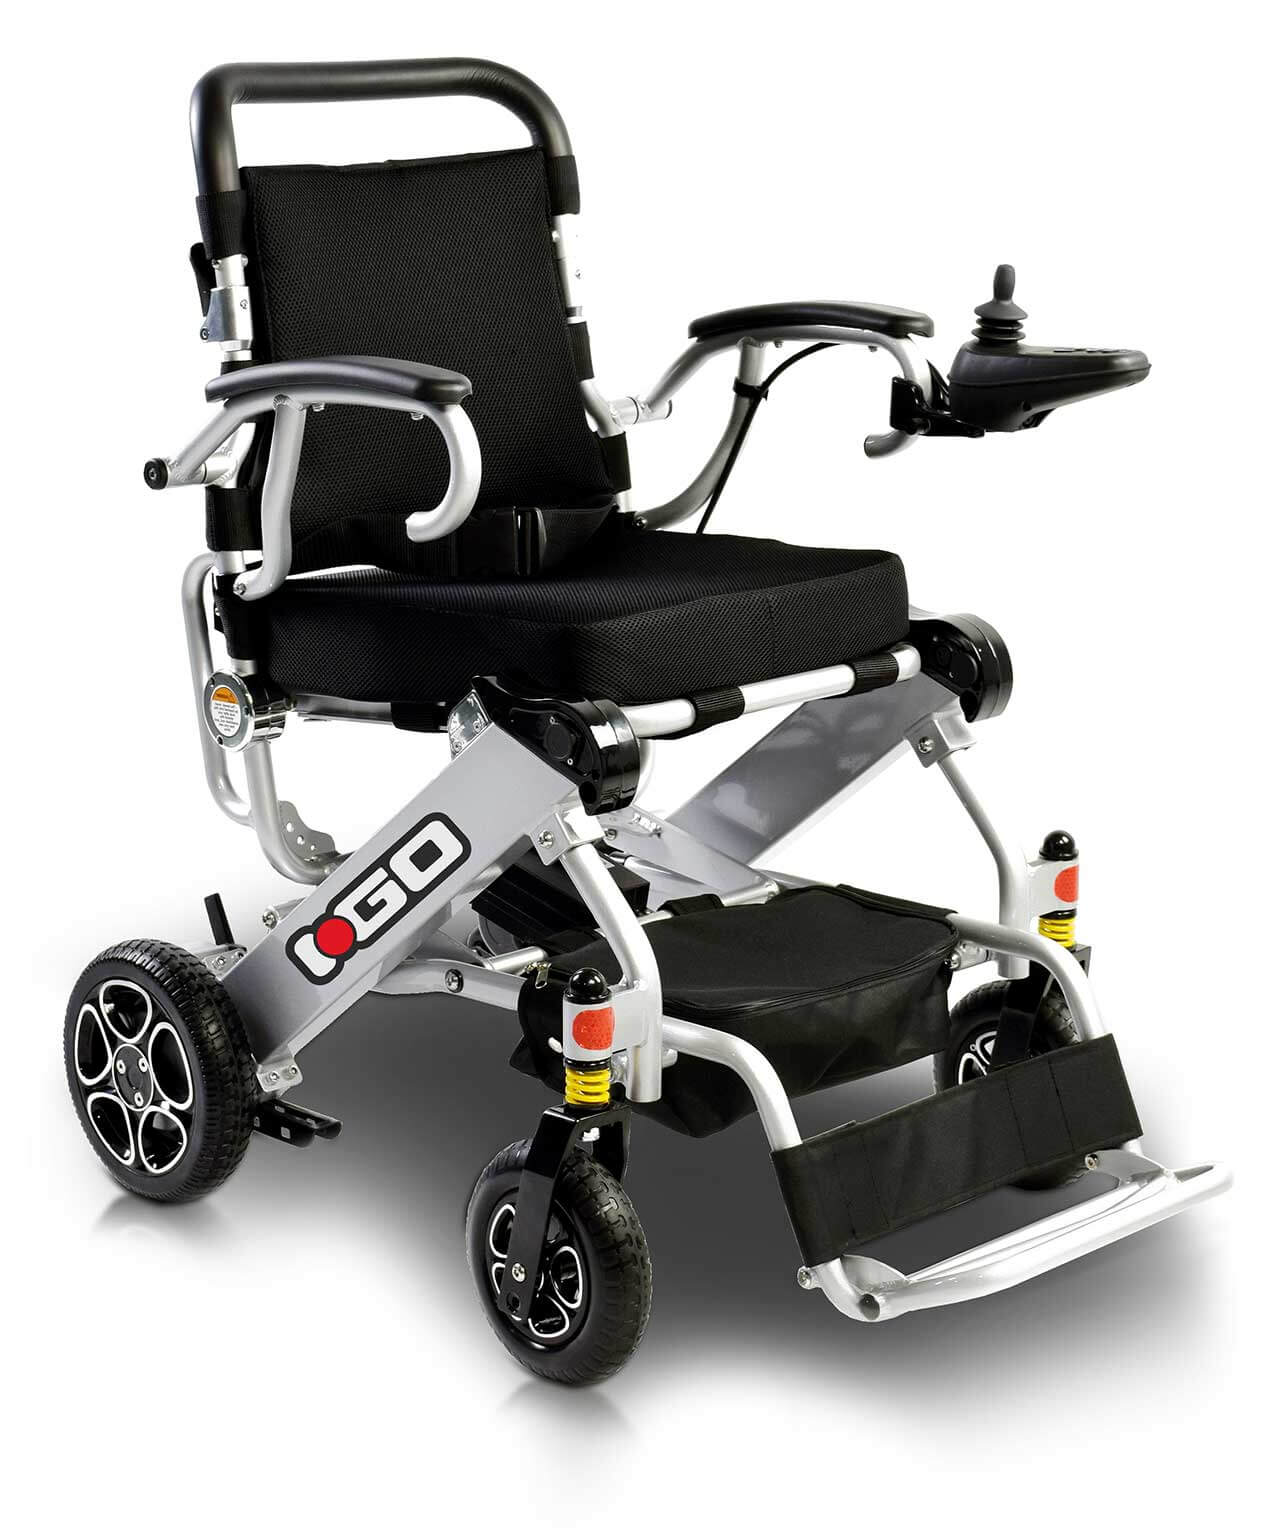 Pride i Go Powerchair Electric Wheelchair for hire or sale